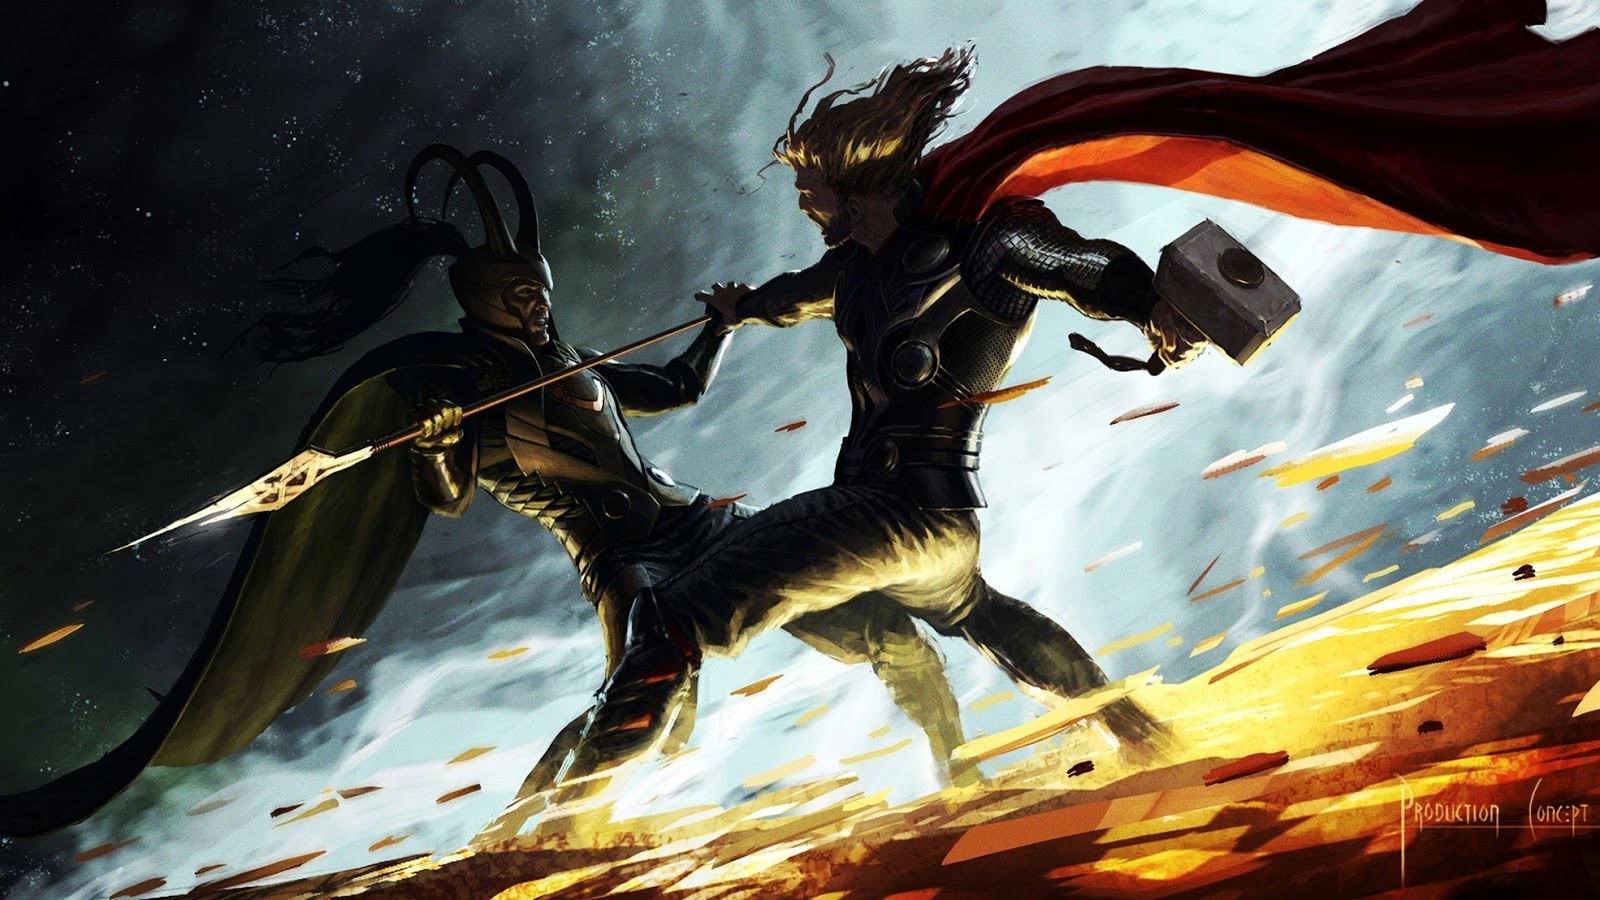 Thor vs Loki c25 - Wallpapers